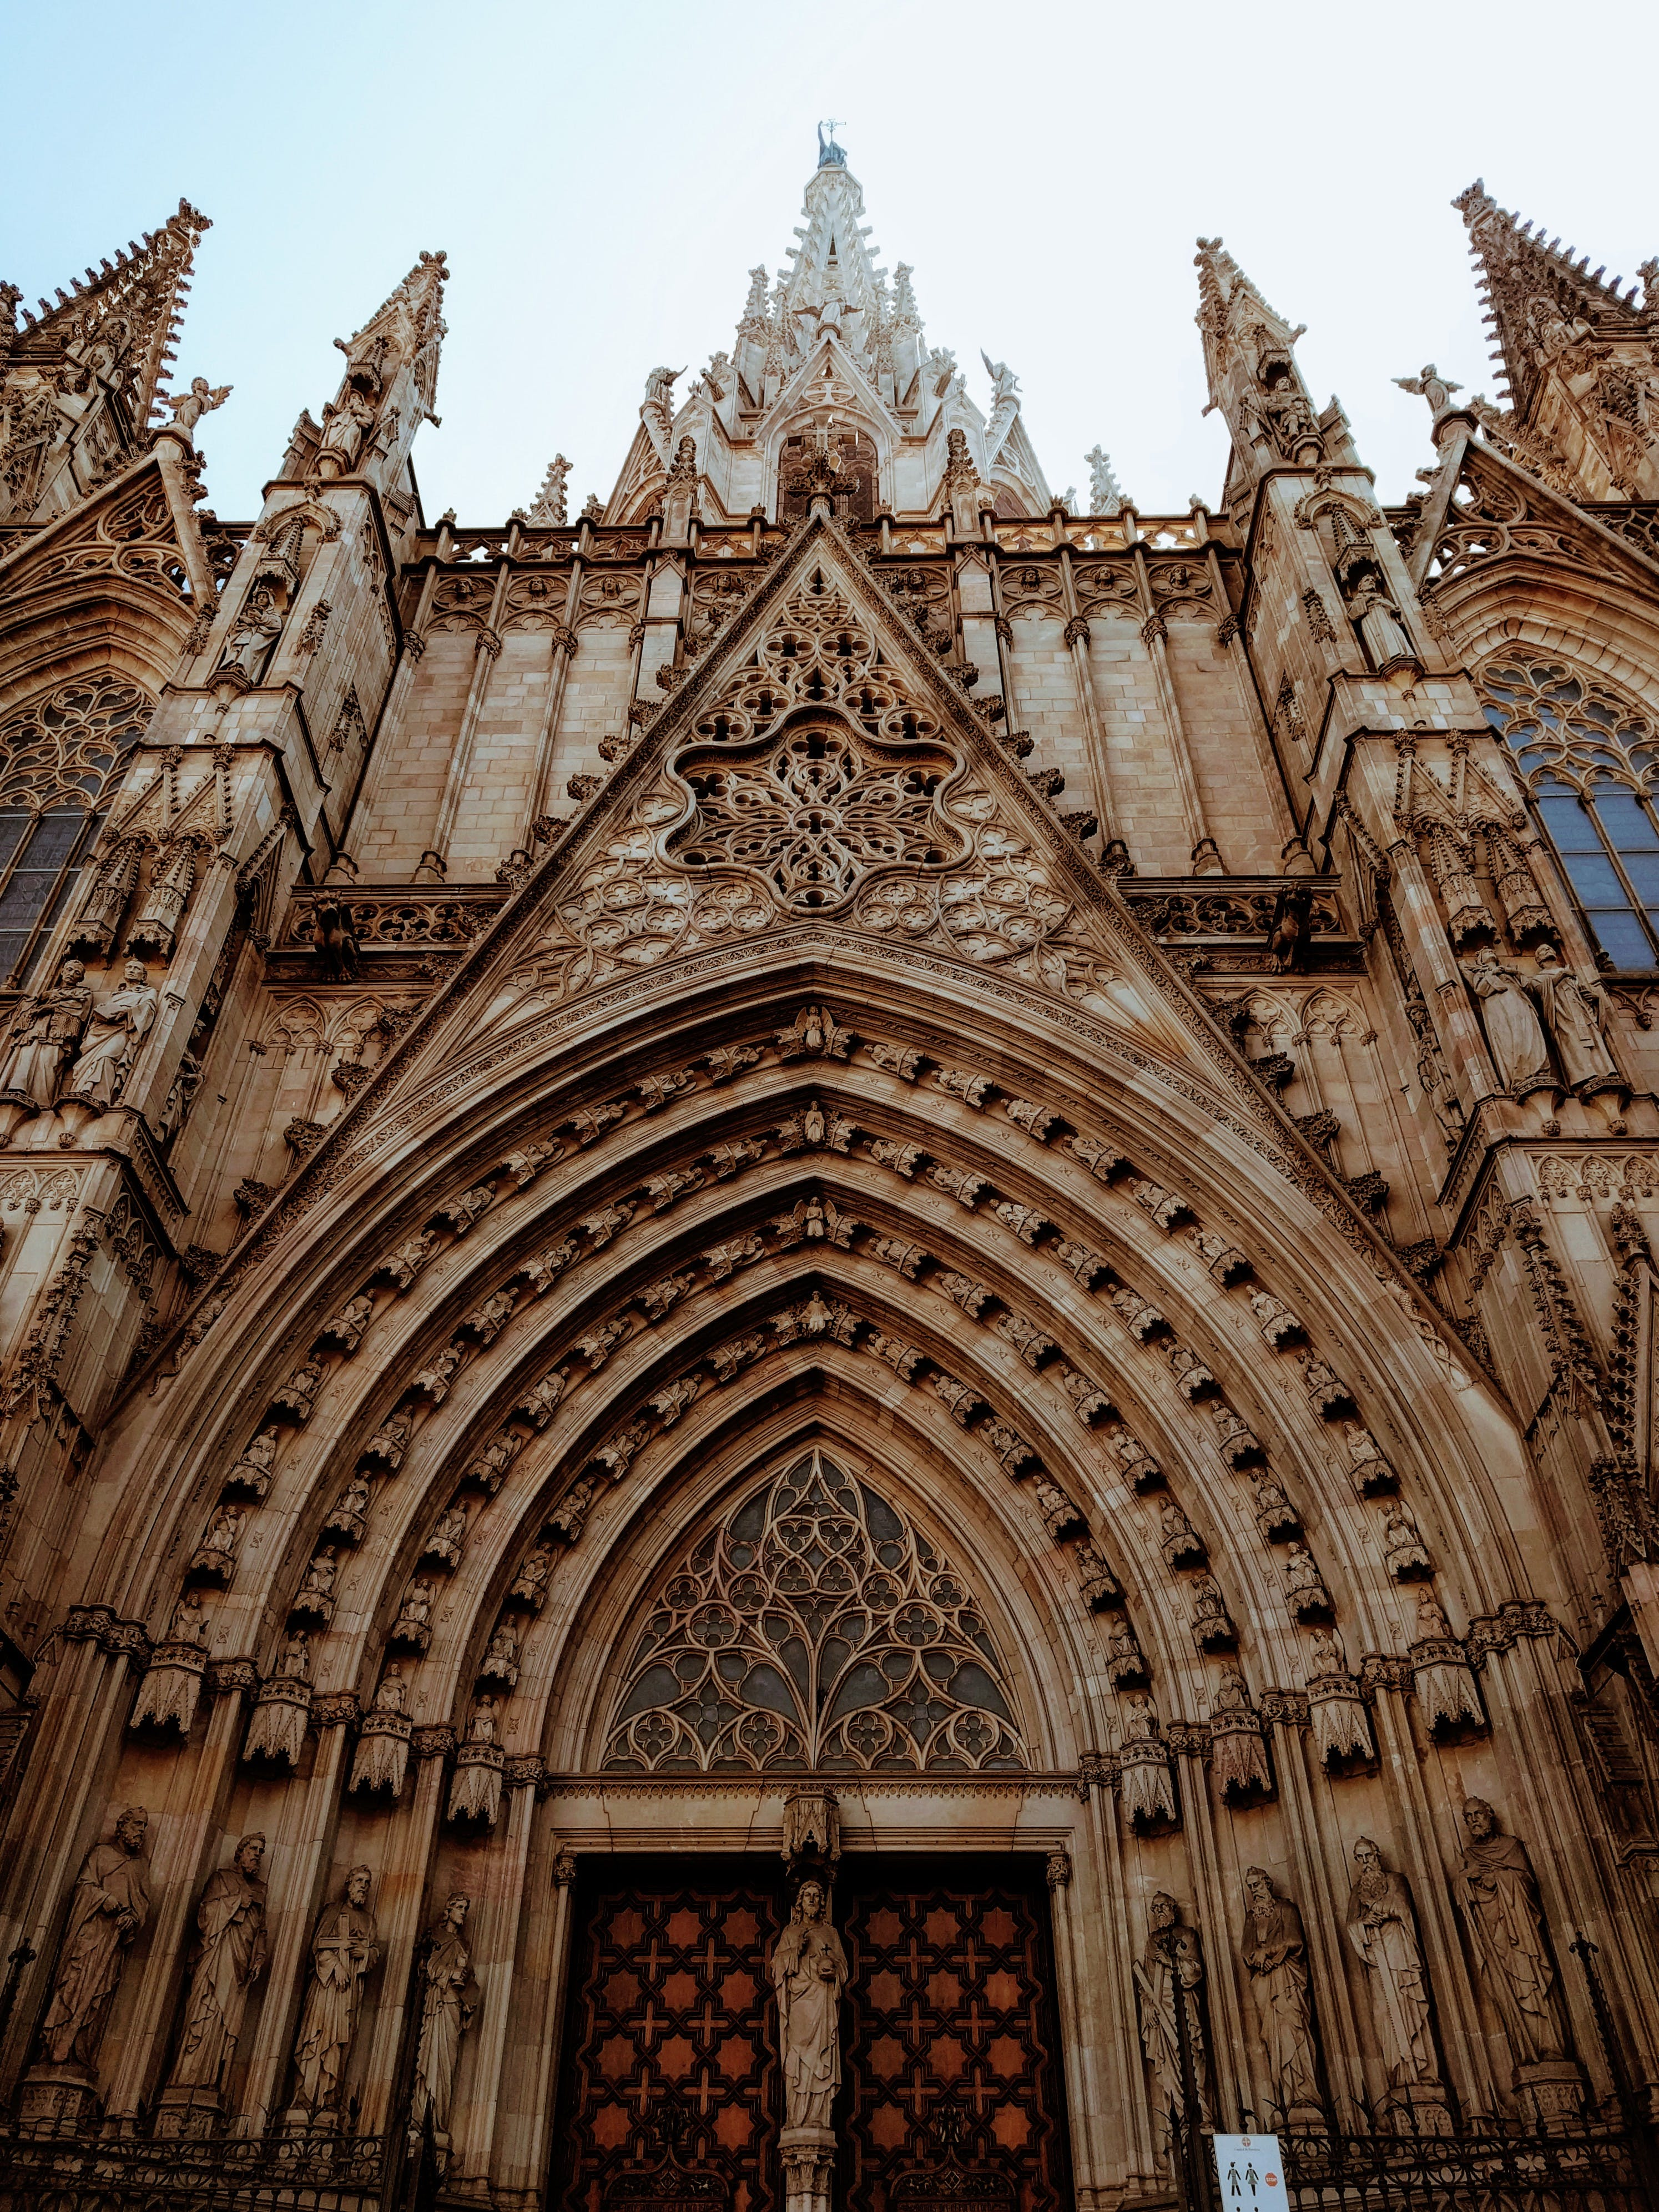 Worm's Eye view of the Barcelona Cathedral